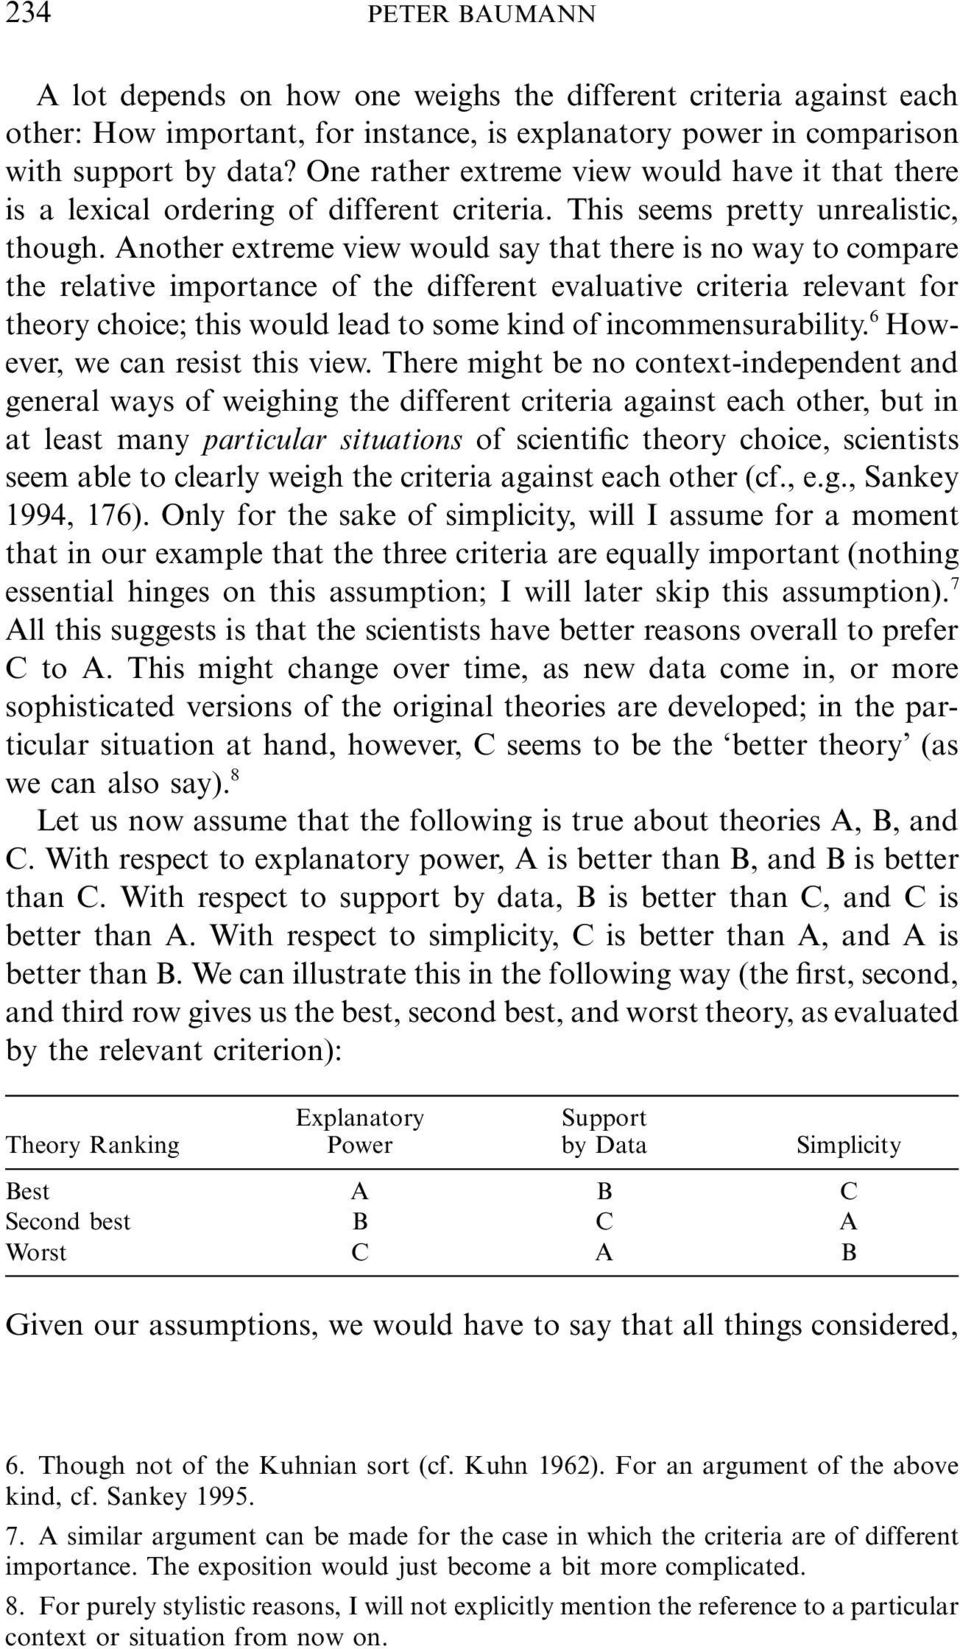 Another extreme view would say that there is no way to compare the relative importance of the different evaluative criteria relevant for theory choice; this would lead to some kind of